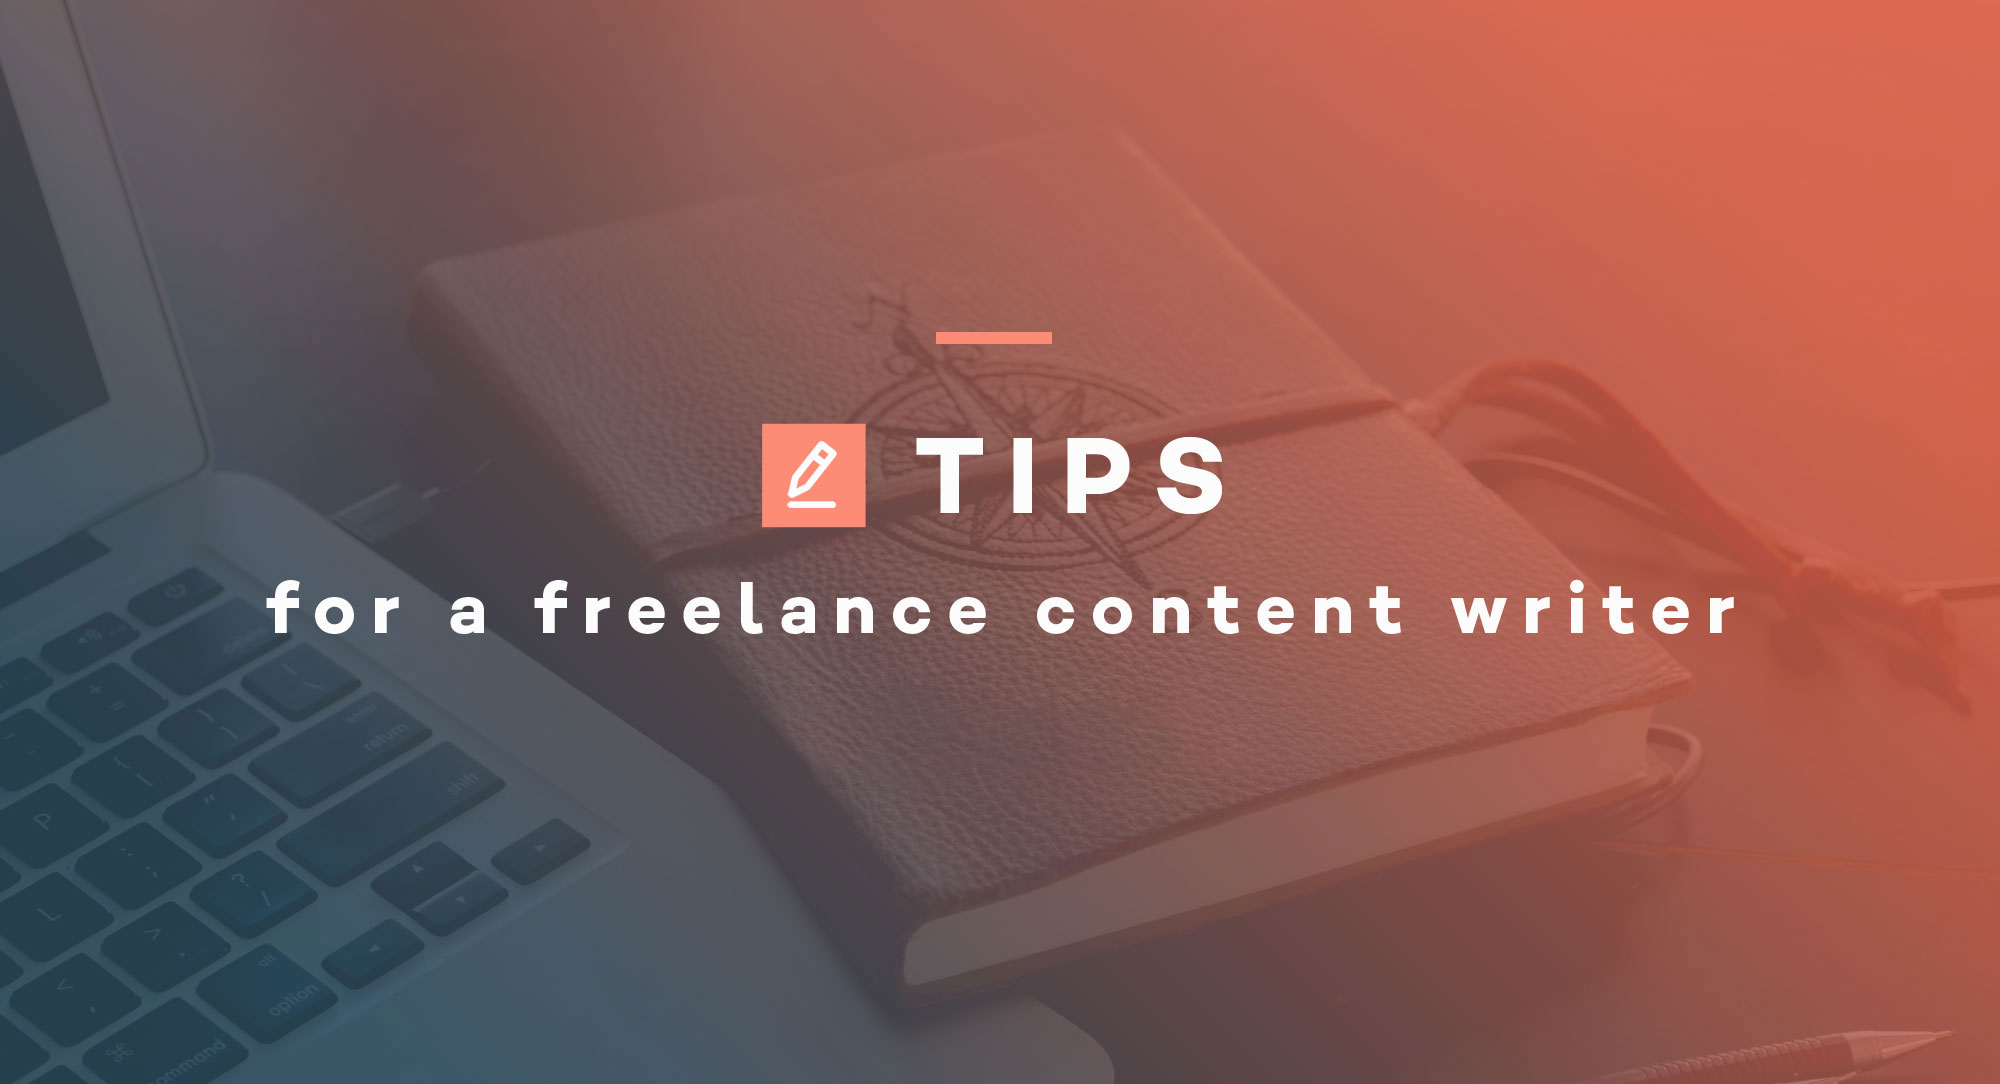 tips-for-a-freelance-content-writer